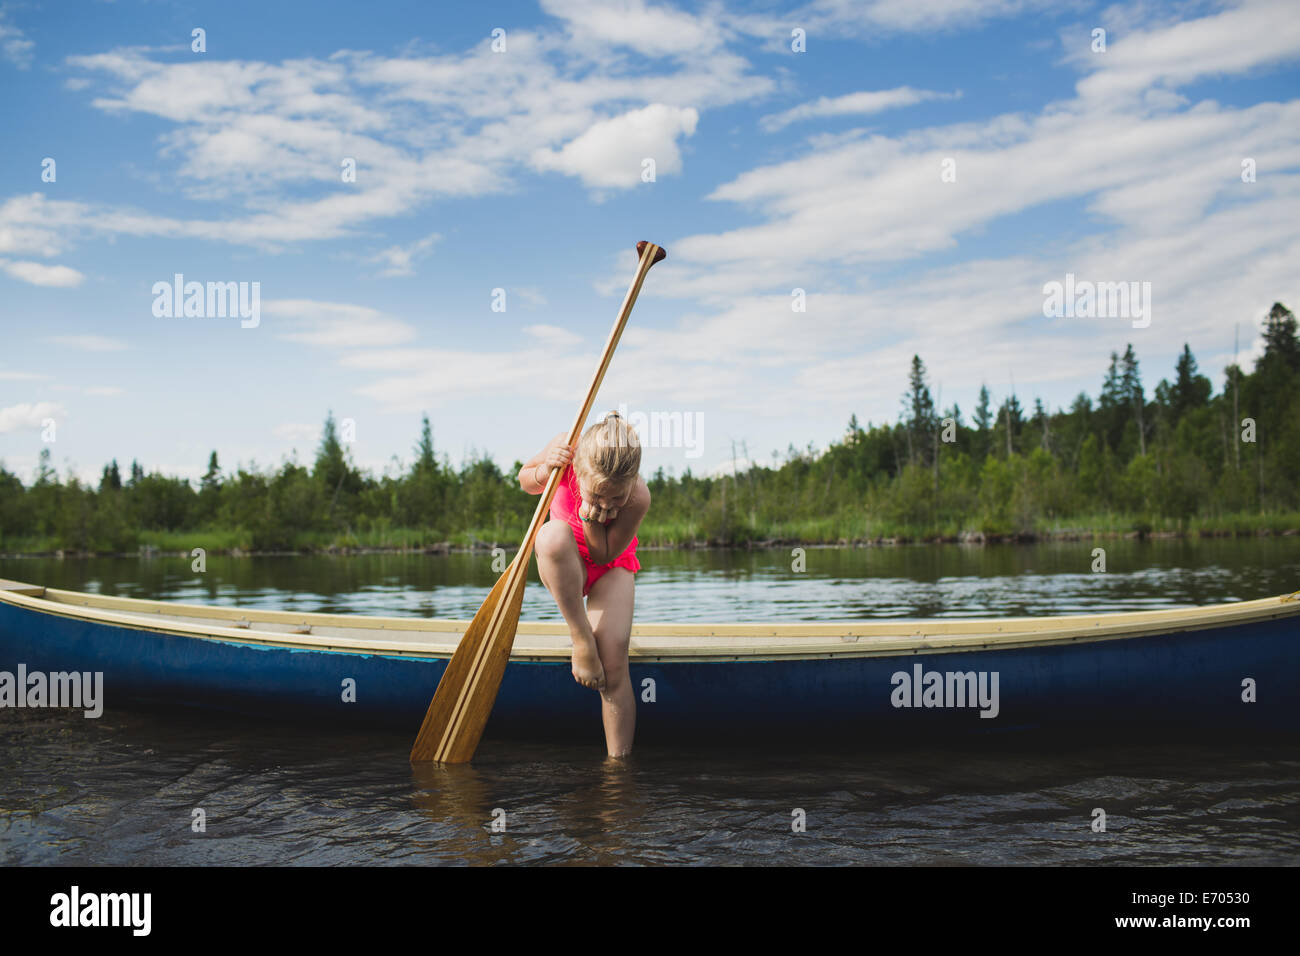 Jeune fille curieuse en regardant l'eau dans Indian River, Ontario, Canada Photo Stock